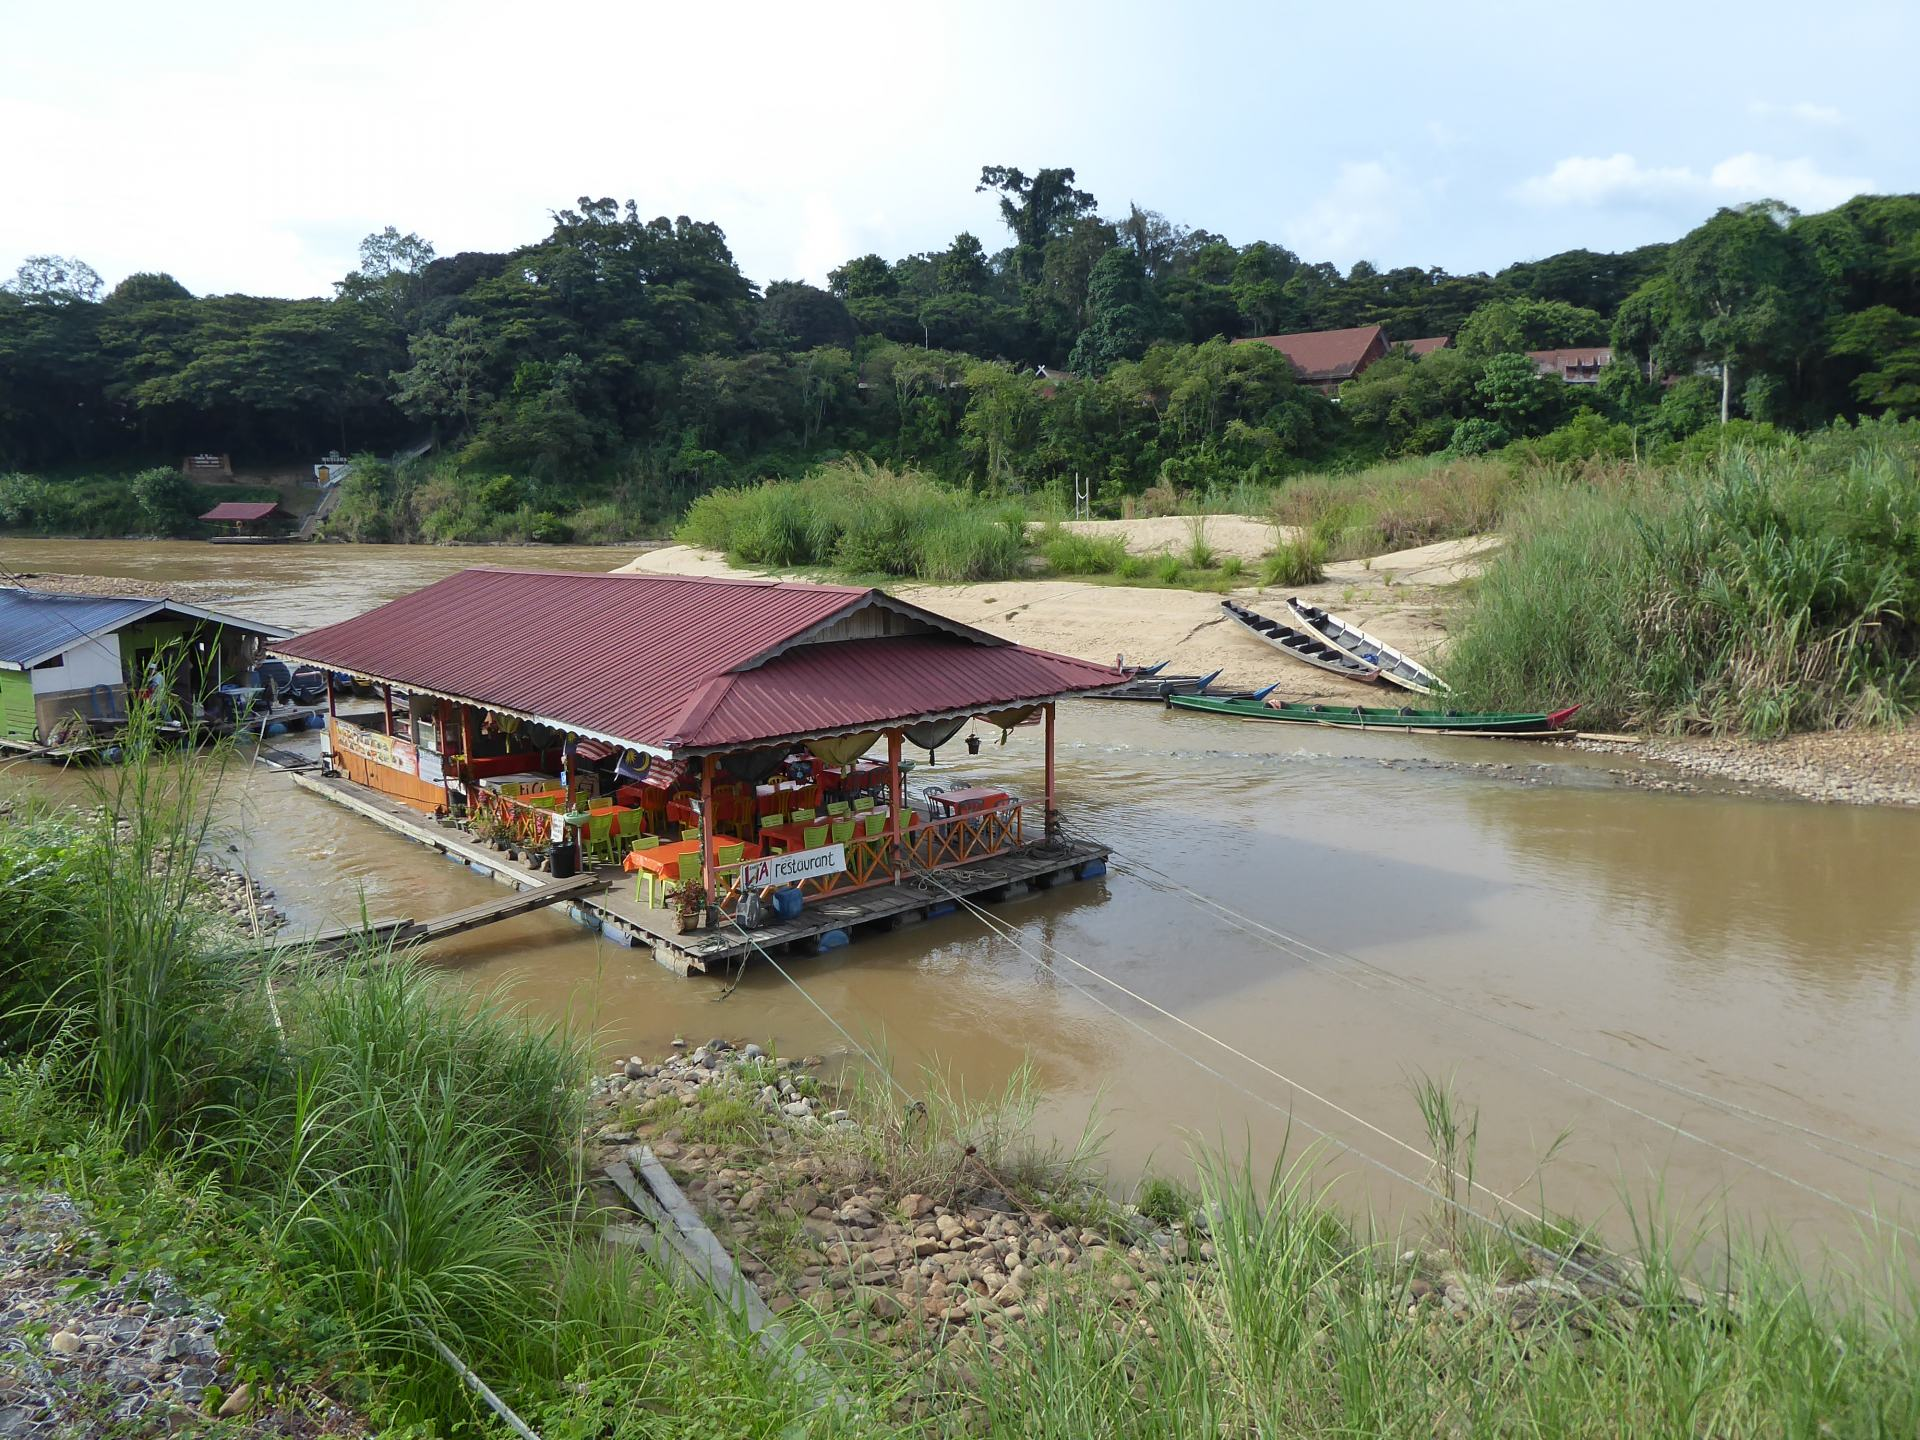 A view of a floating restaurant in Taman Negara, on the river with jungle around